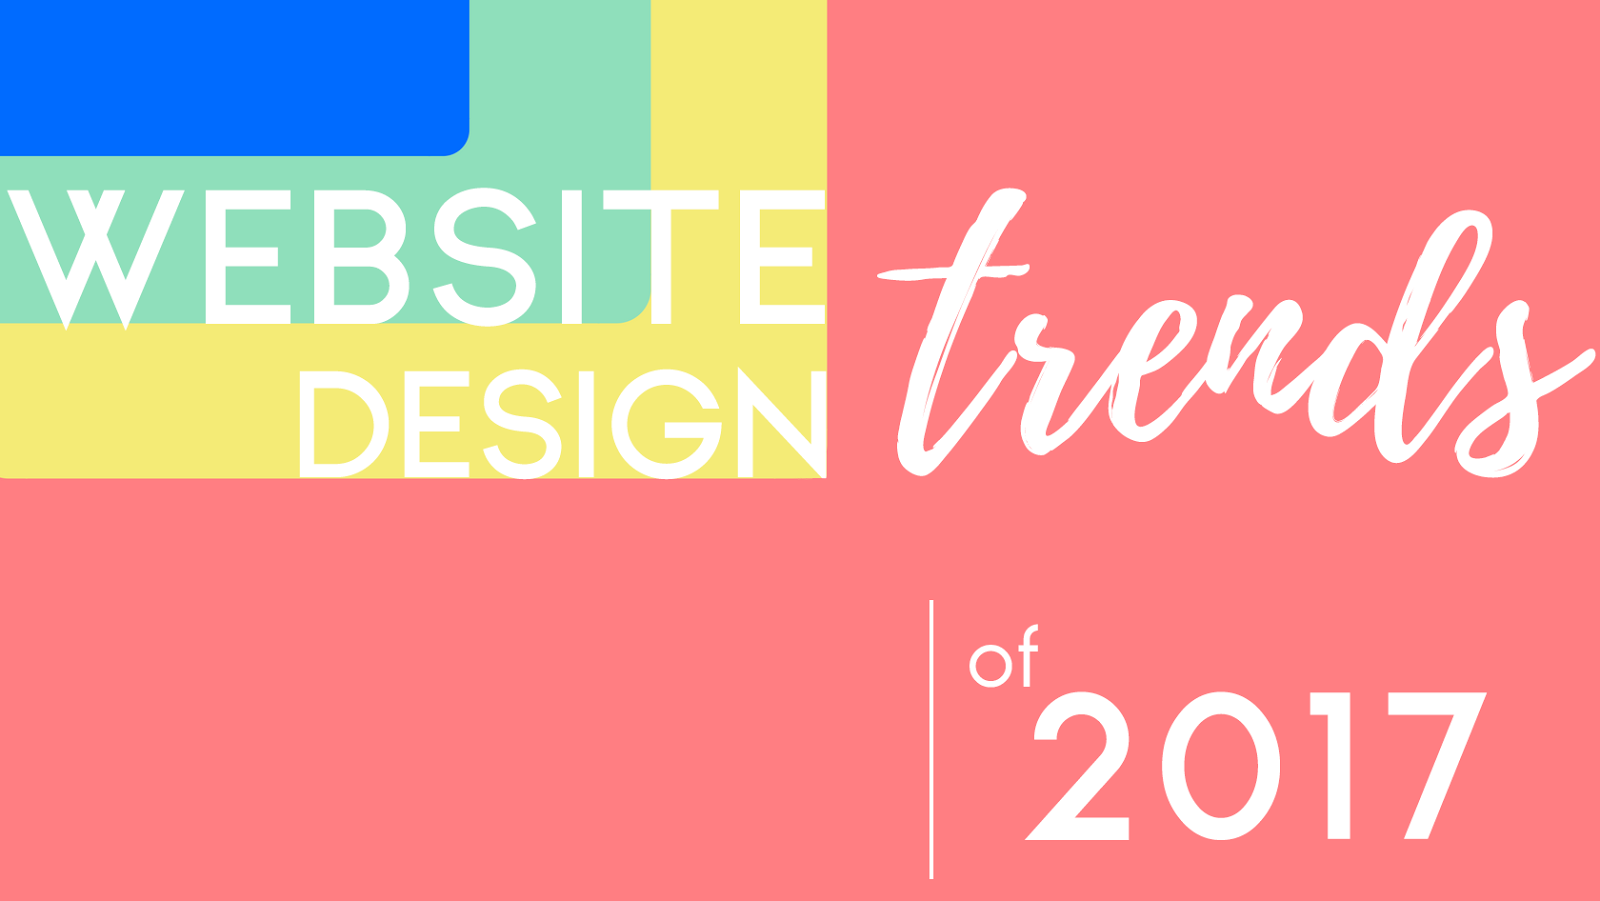 Web Design Trends of 2017